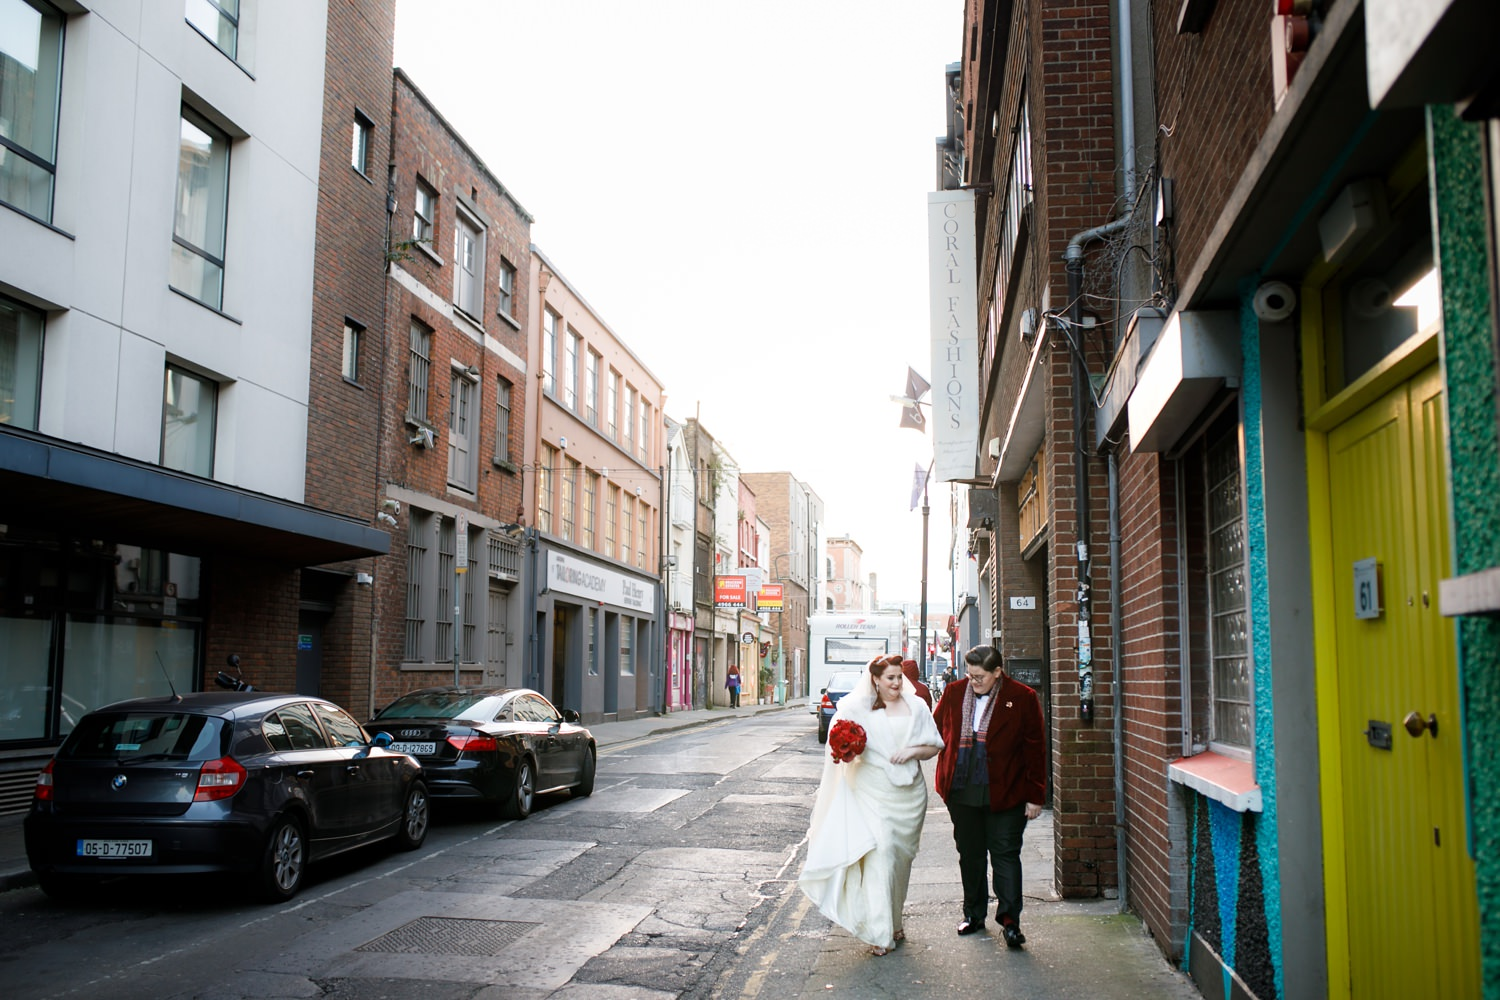 Elisha-Clarke-Photography-Dublin-City-Wedding_00480.jpg